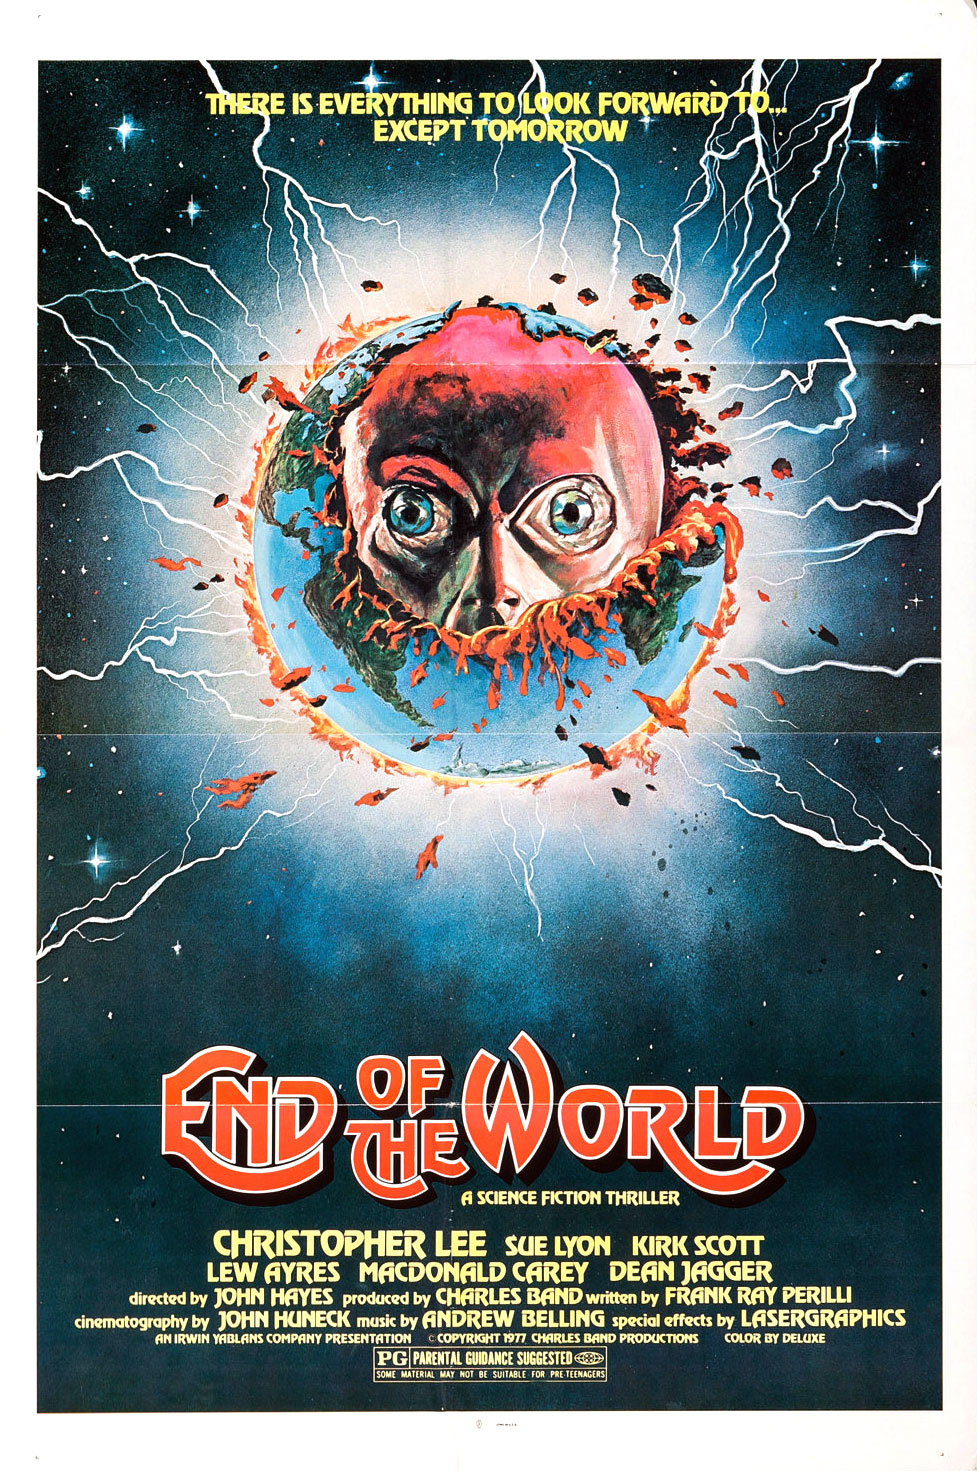 End of the World 1977 movie poster